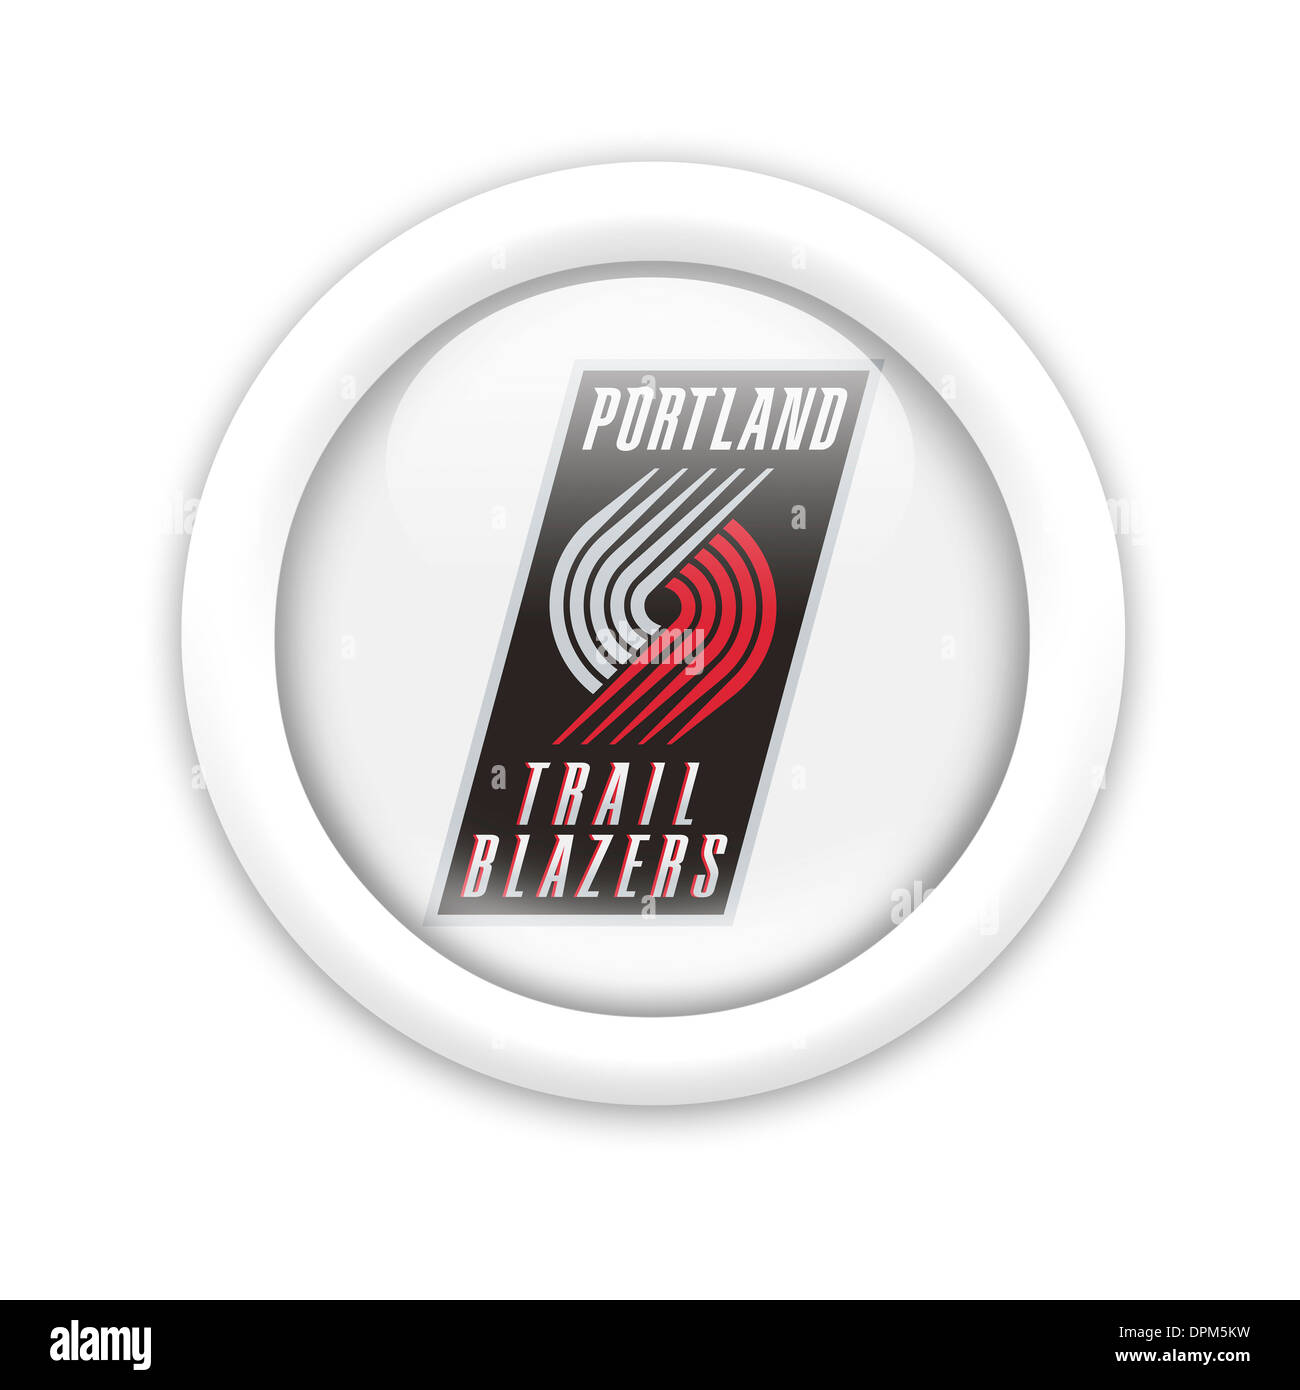 Portland Trail Blazers Logo Flag Symbol Icon Emblem Stock Photo